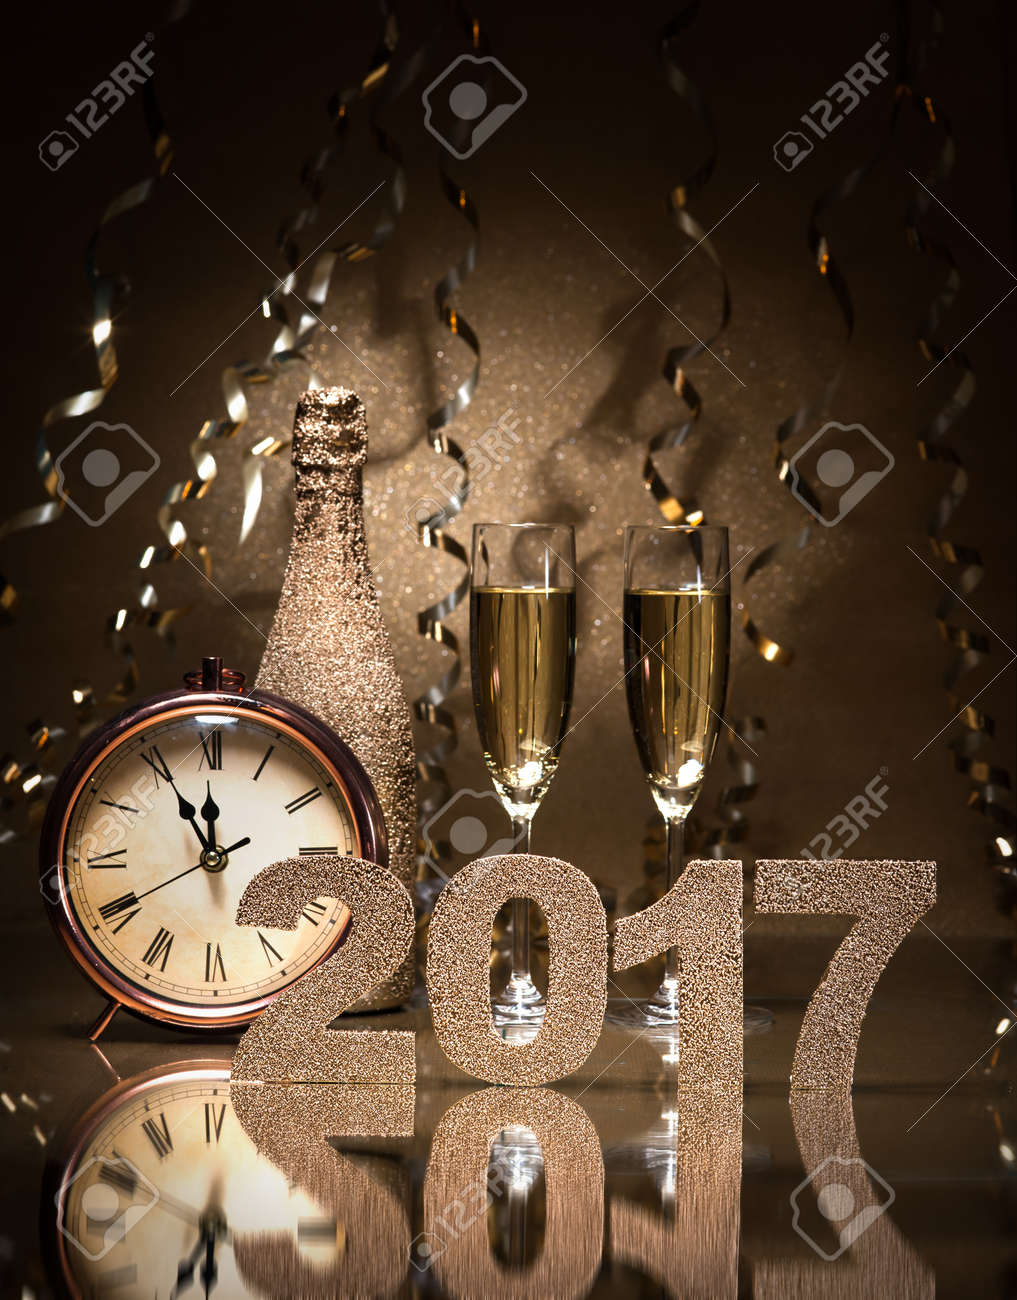 New Years Eve celebration background with pair of flutes, bottle of champagne and a clock Stock Photo - 57058876